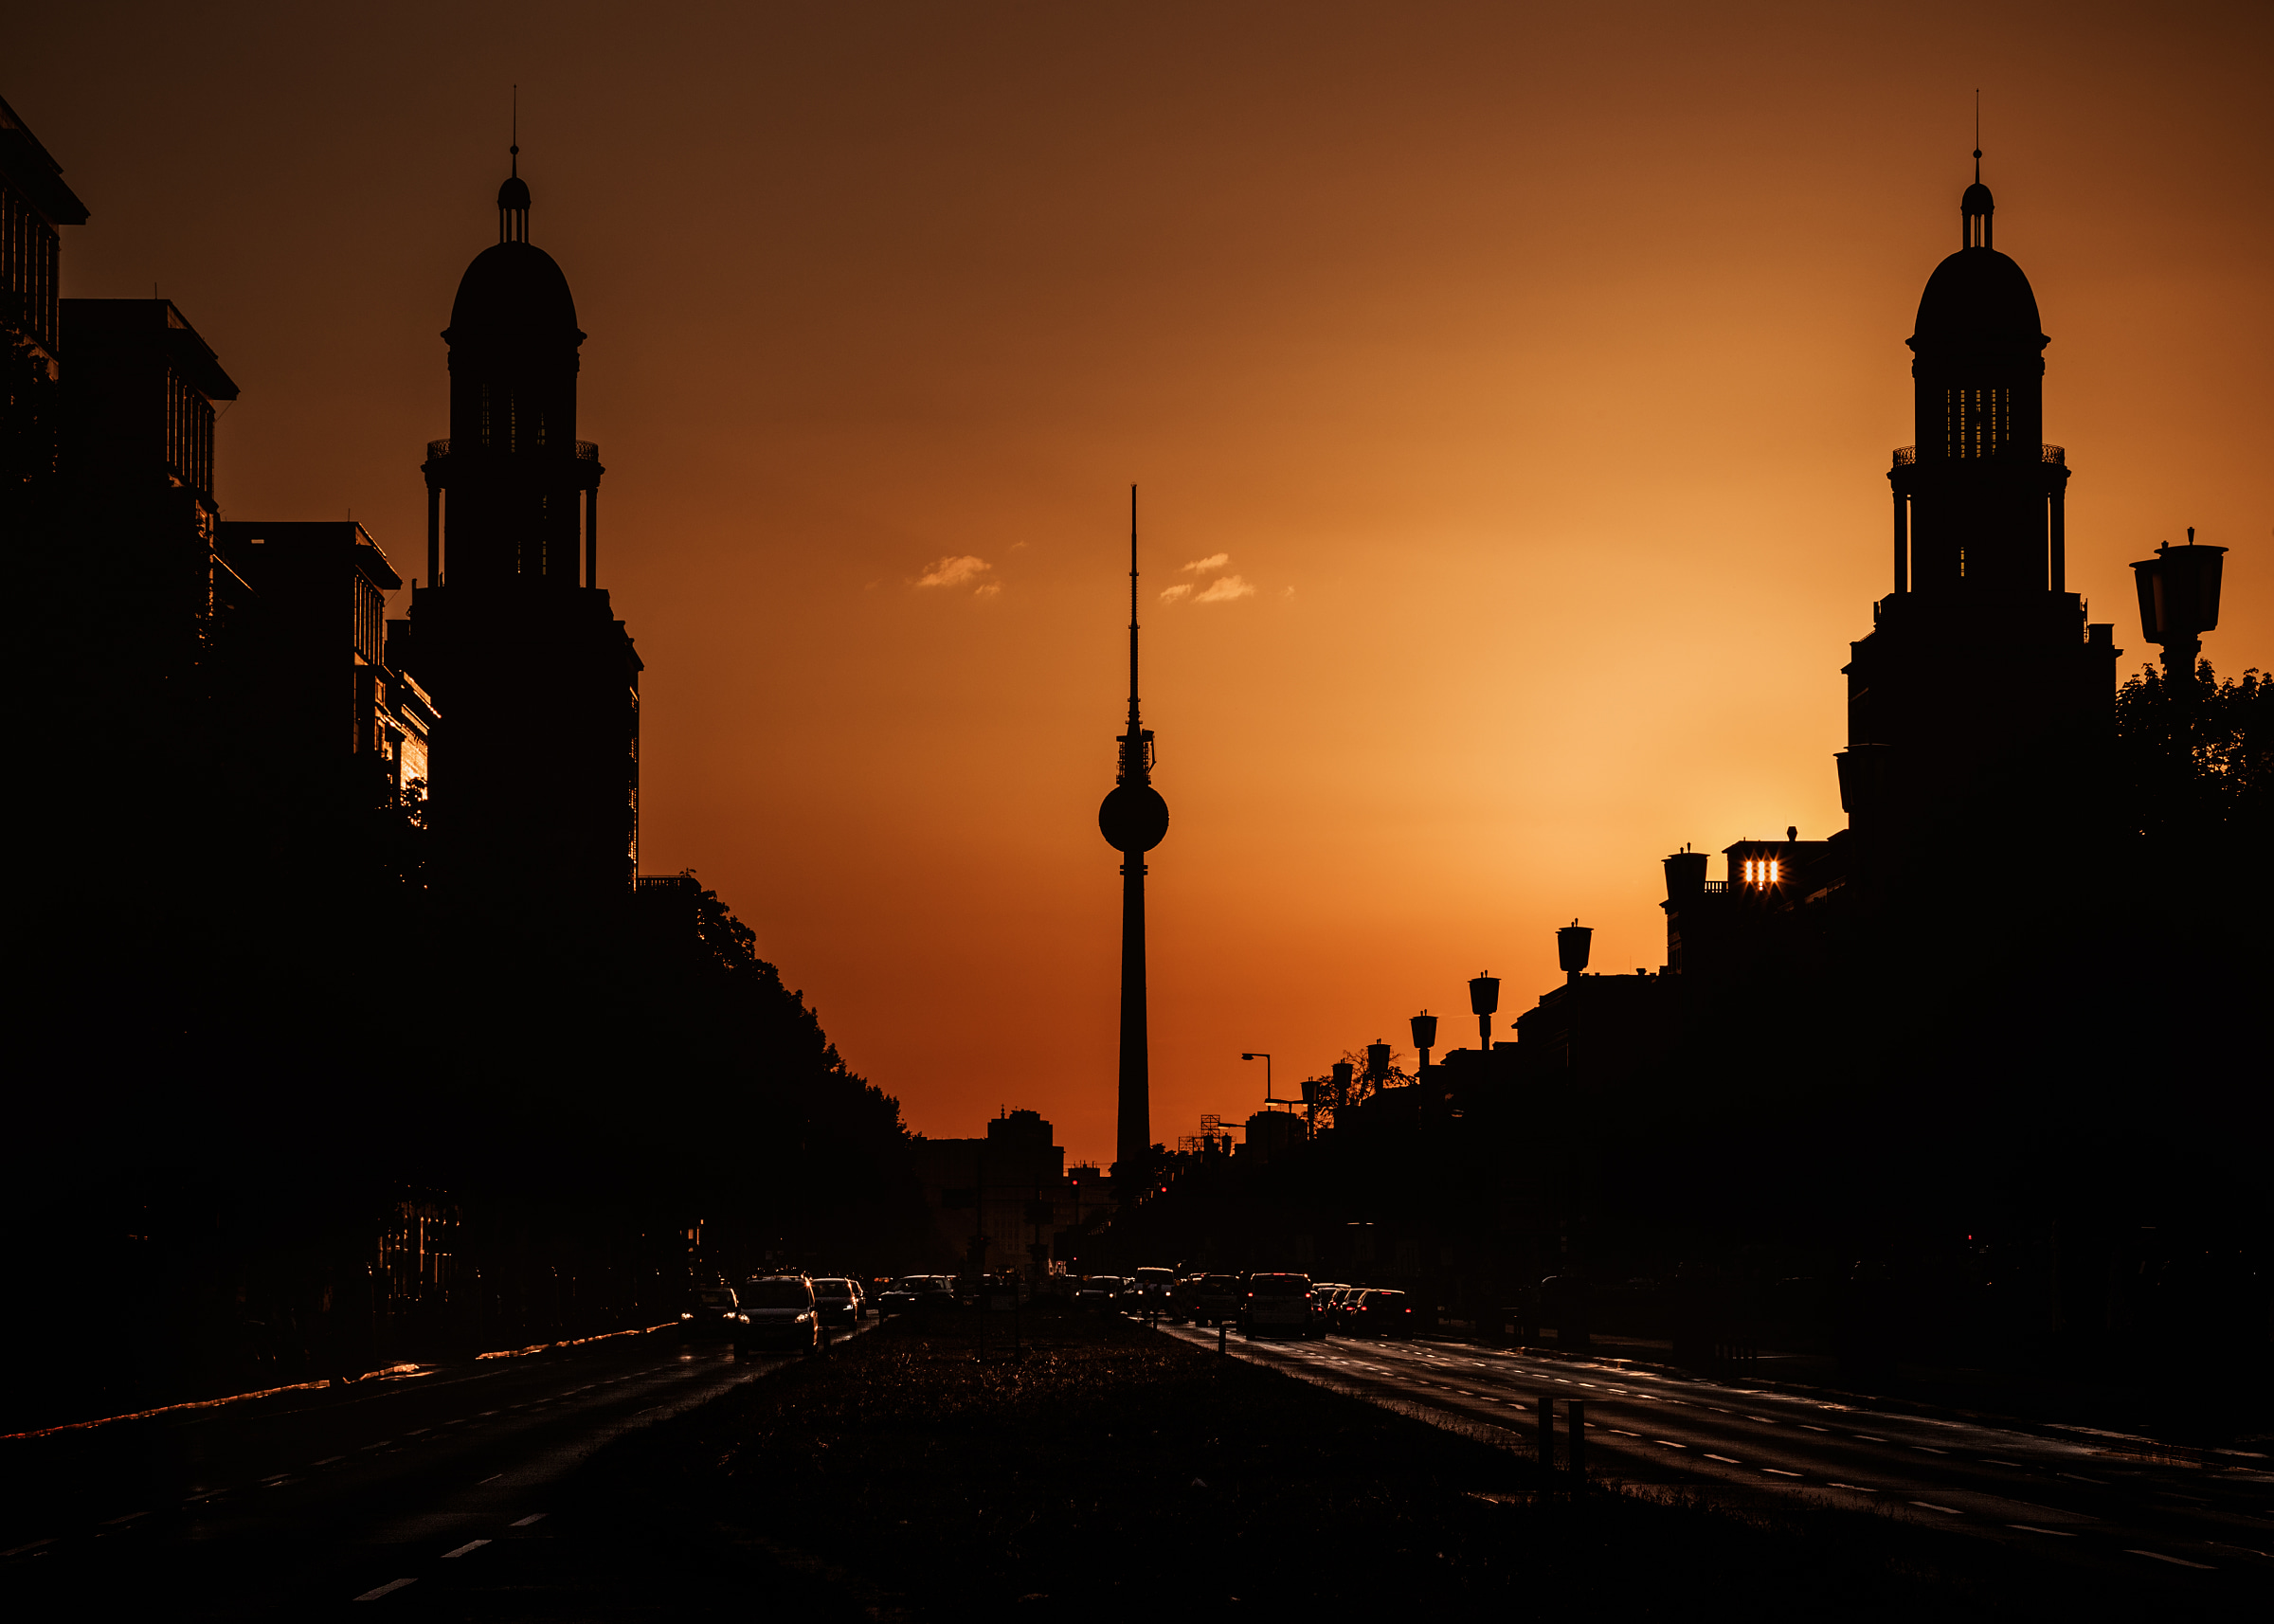 Frankfurter Tor at sunset